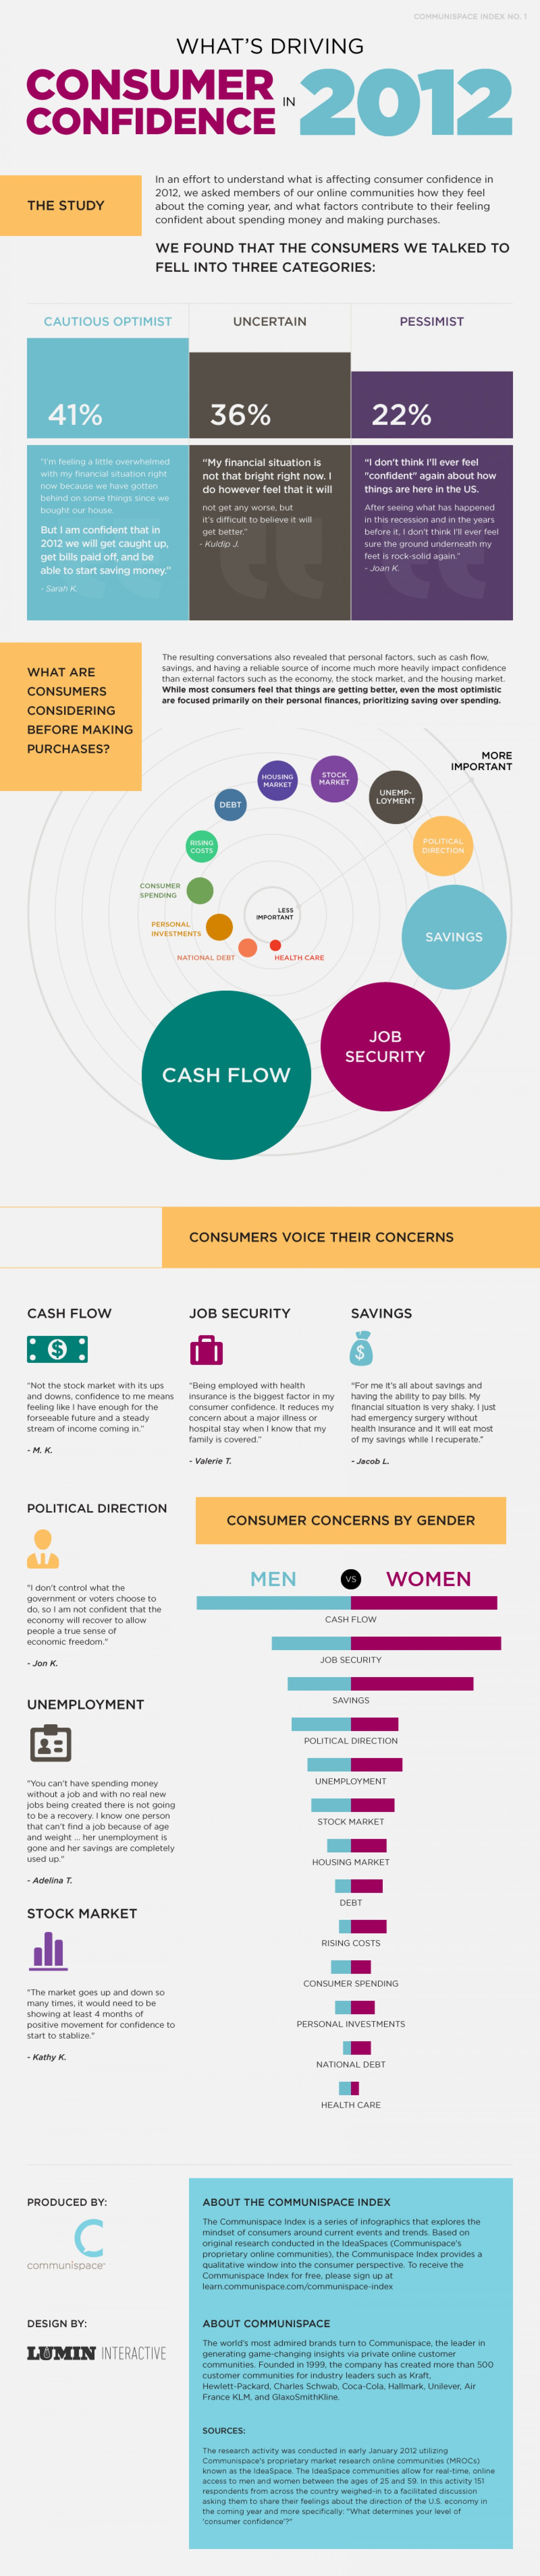 What's Driving Consumer Confidence in 2012?